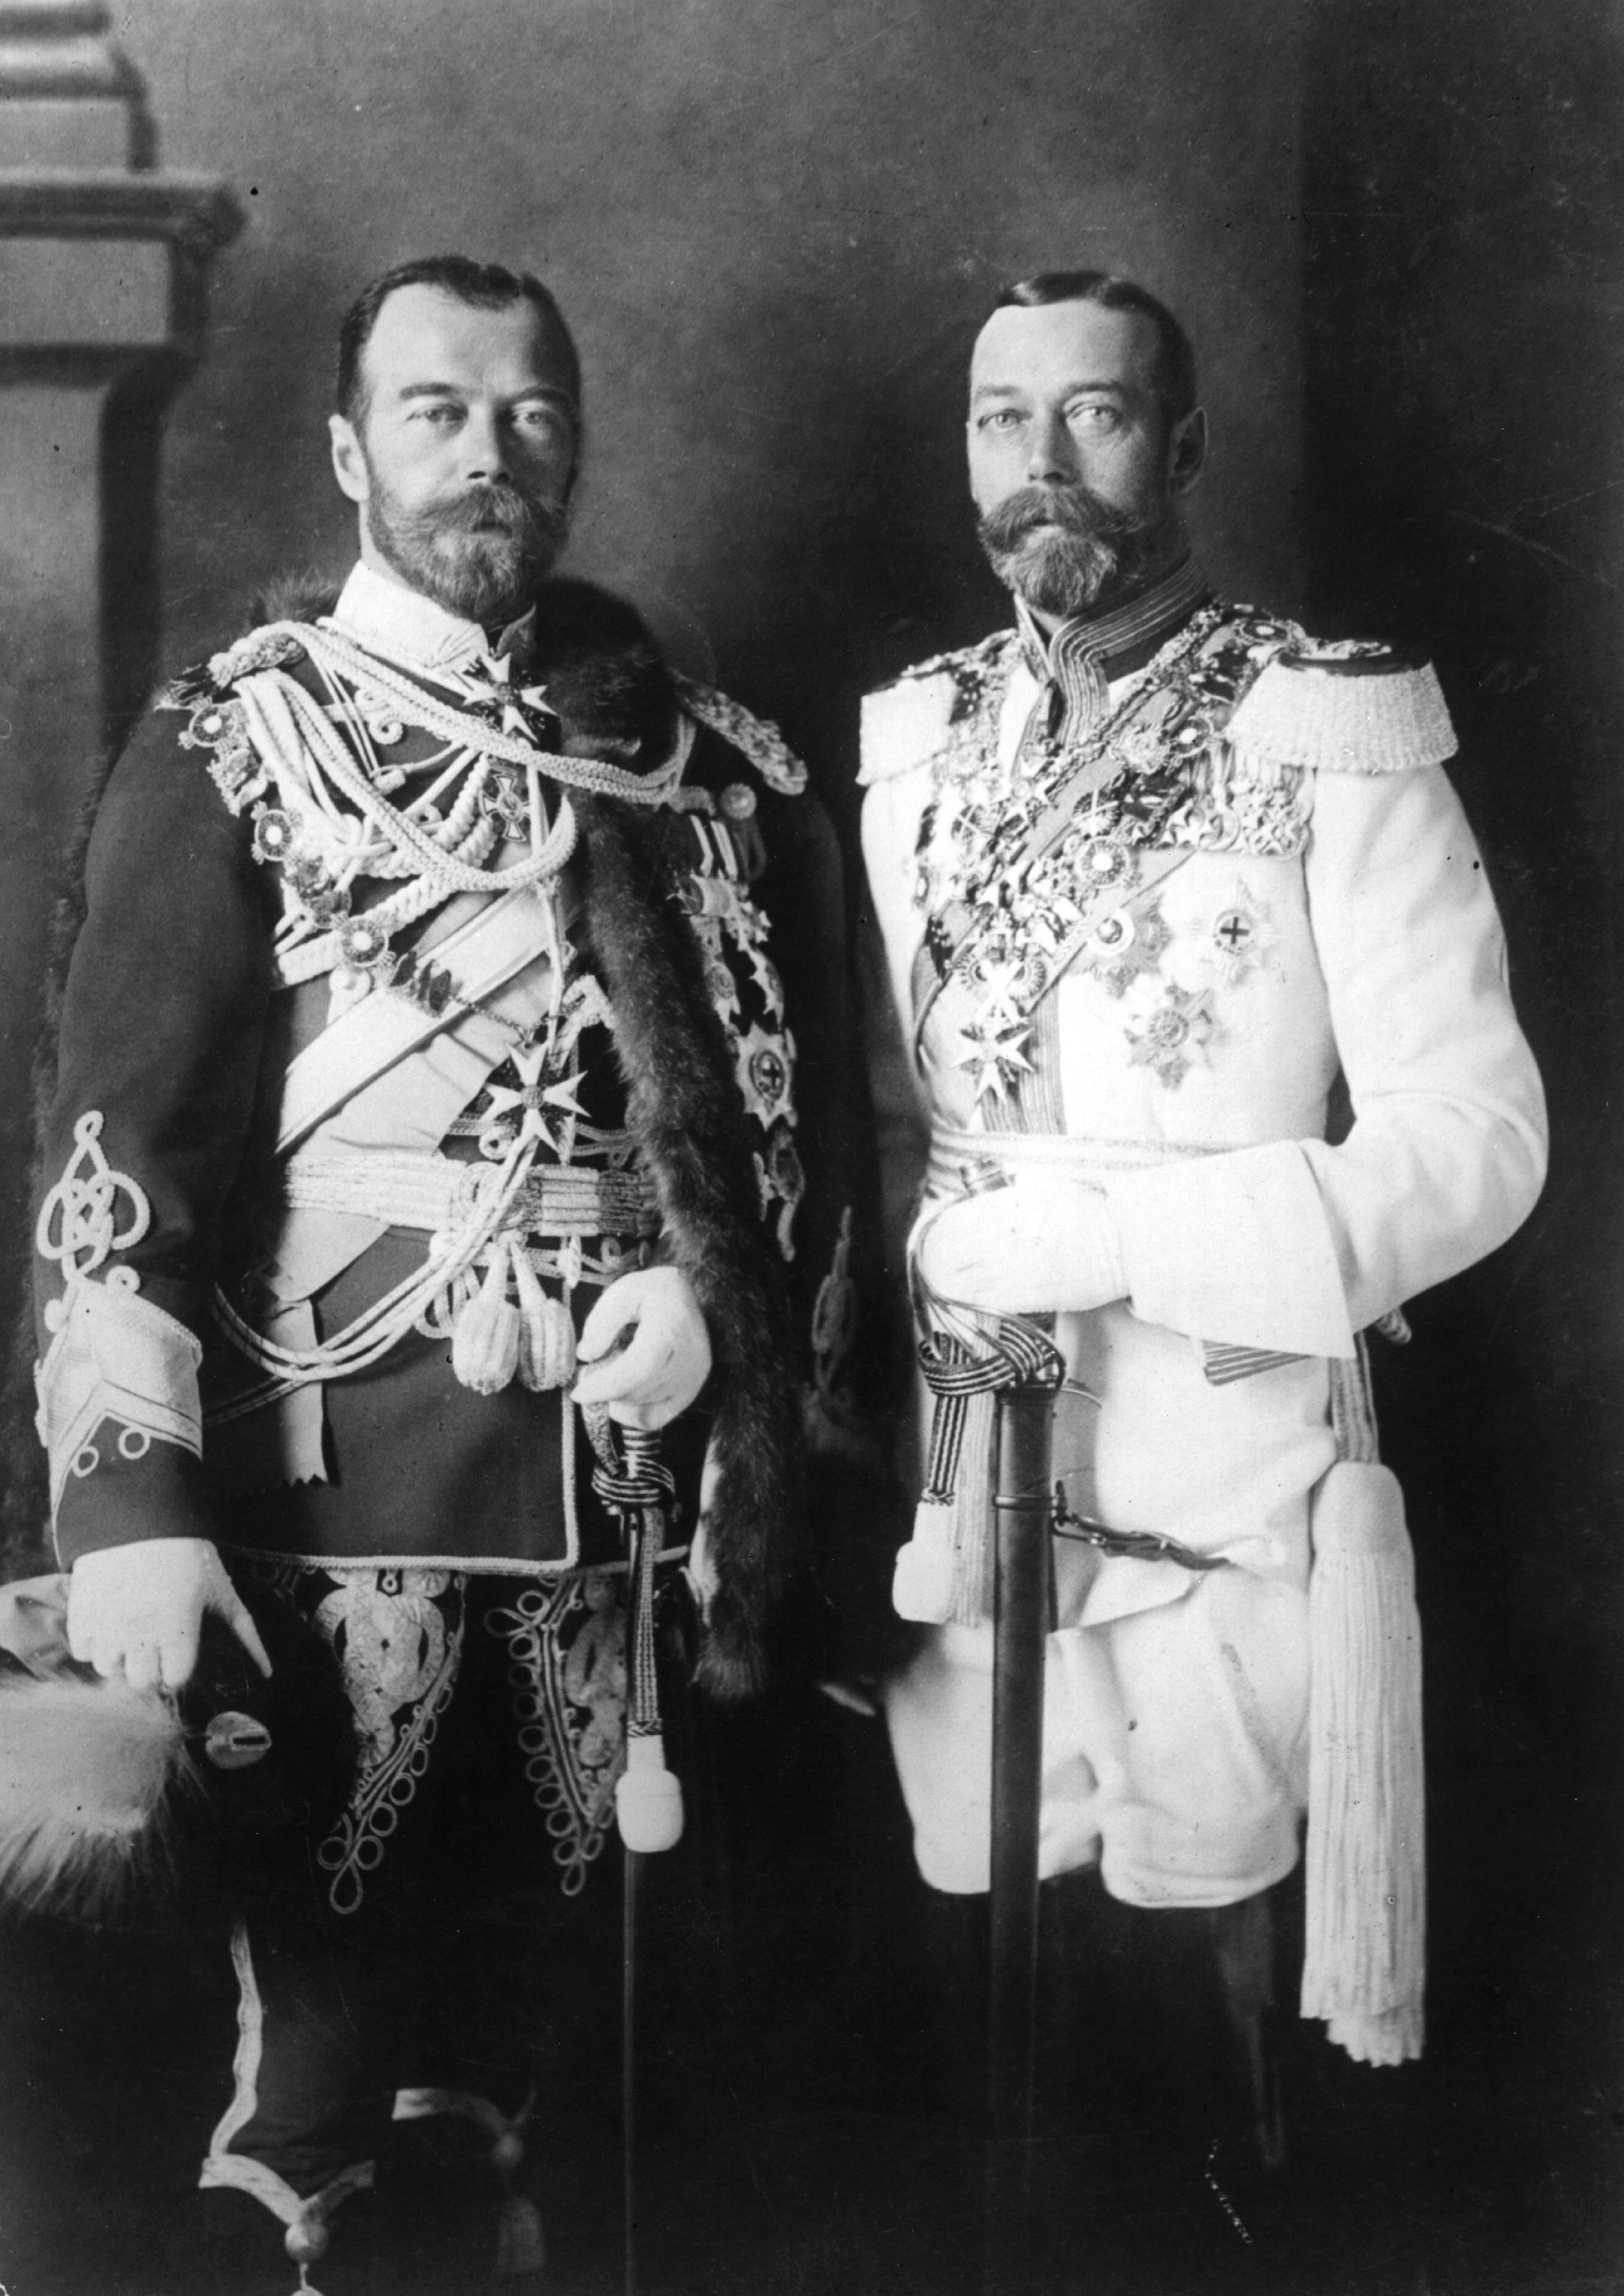 George V (right) and his physically similar cousin Nicholas II of Russia in German uniforms before the war. Photo by Hulton Archive on May 26, 1913.